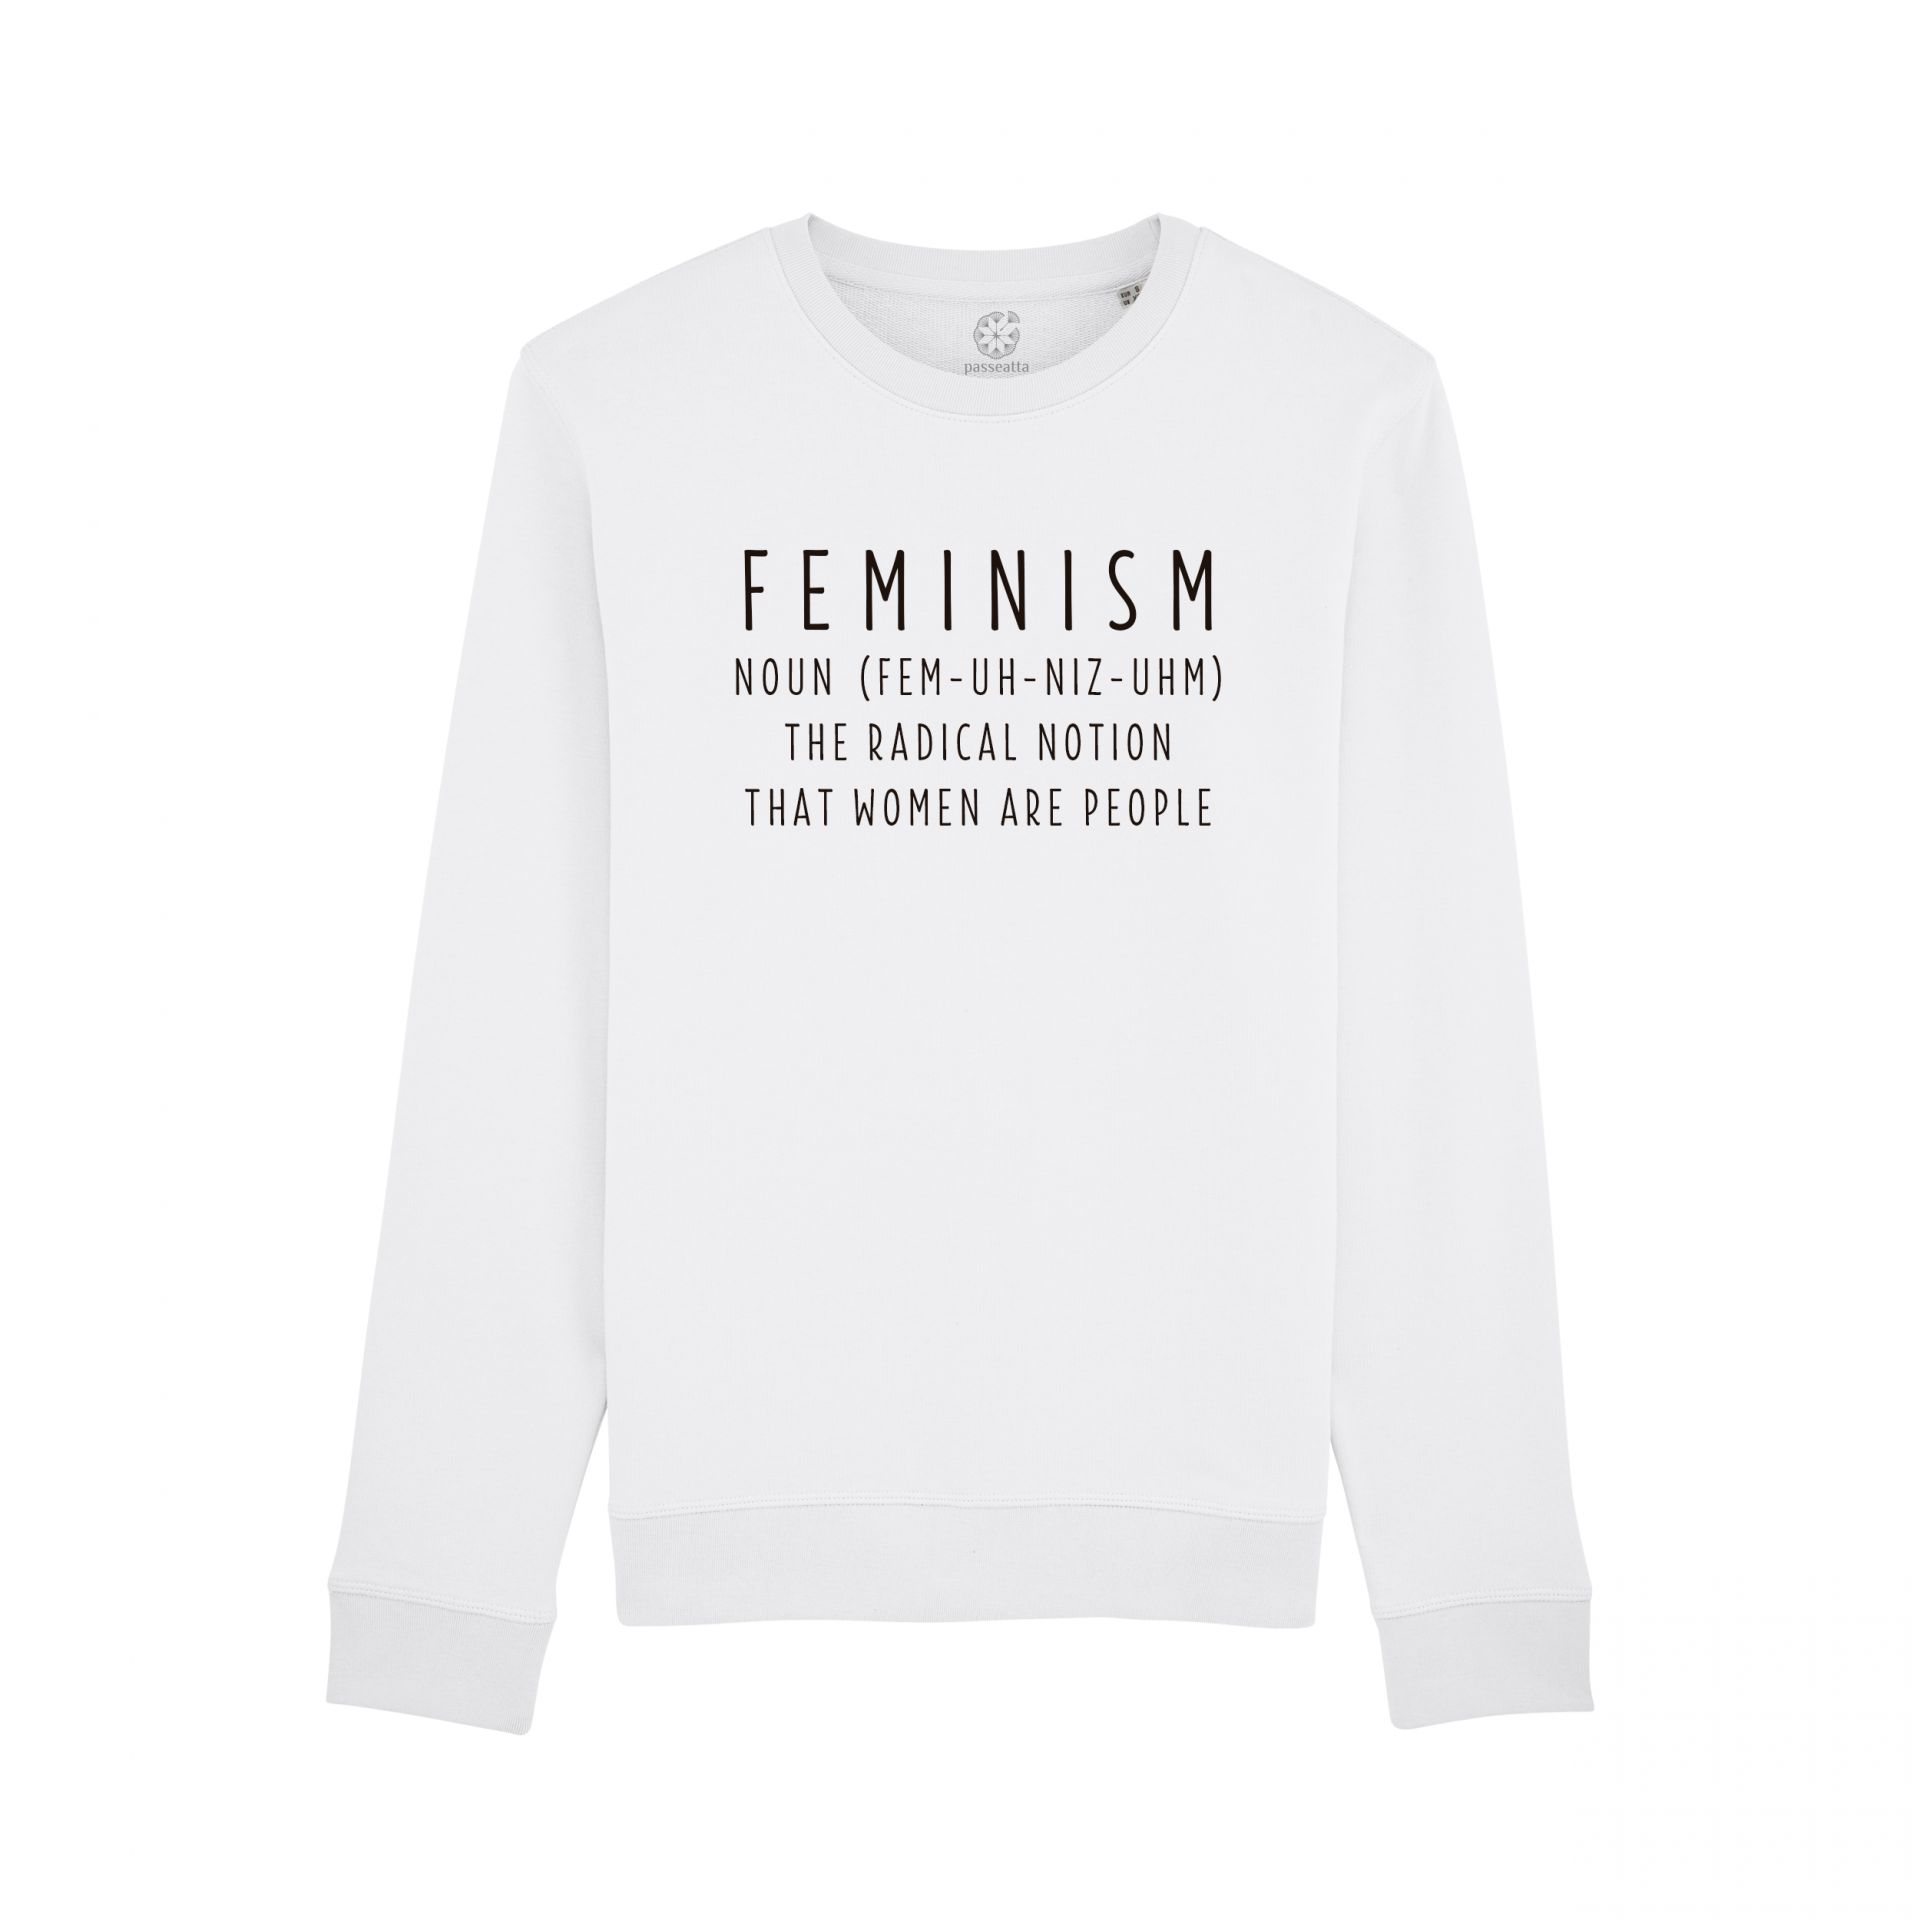 Feminism: The Radical Notion That Women Are People